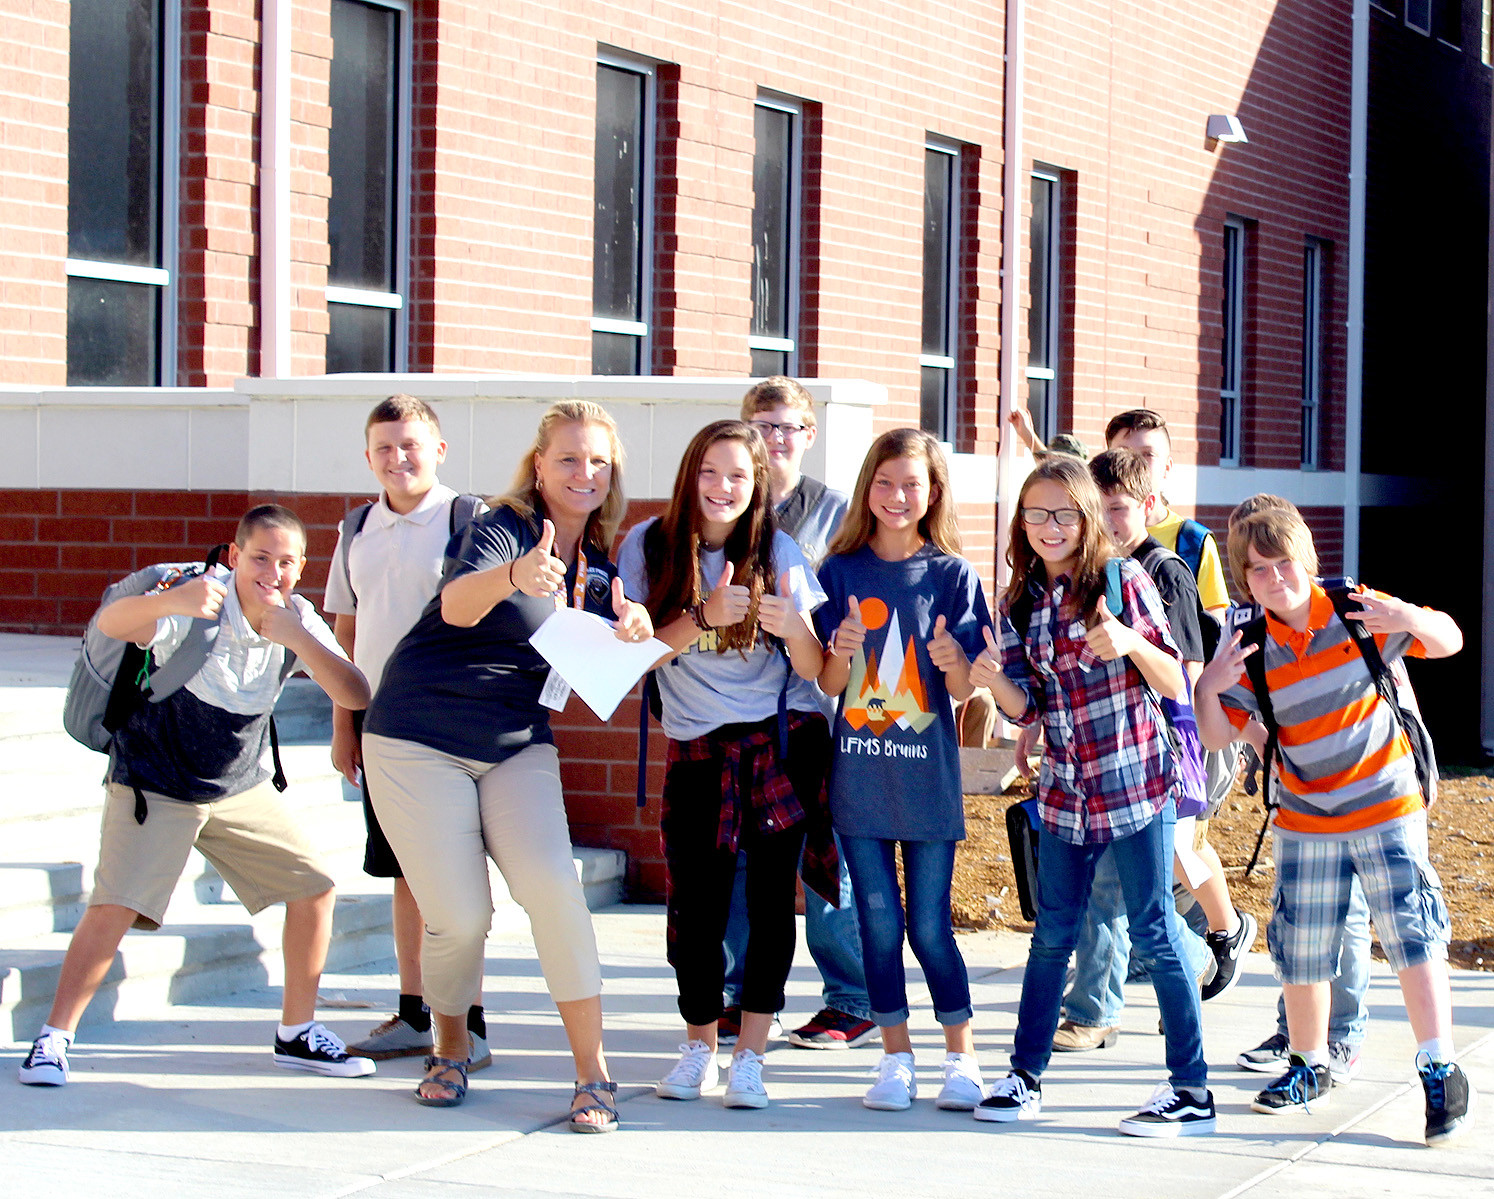 STUDENTS in Angie Underwood's sixth-grade homeroom class pause for a quick photo before heading to class for the first time. Lake Forest Middle School welcomed students to its new academic building Tuesday.